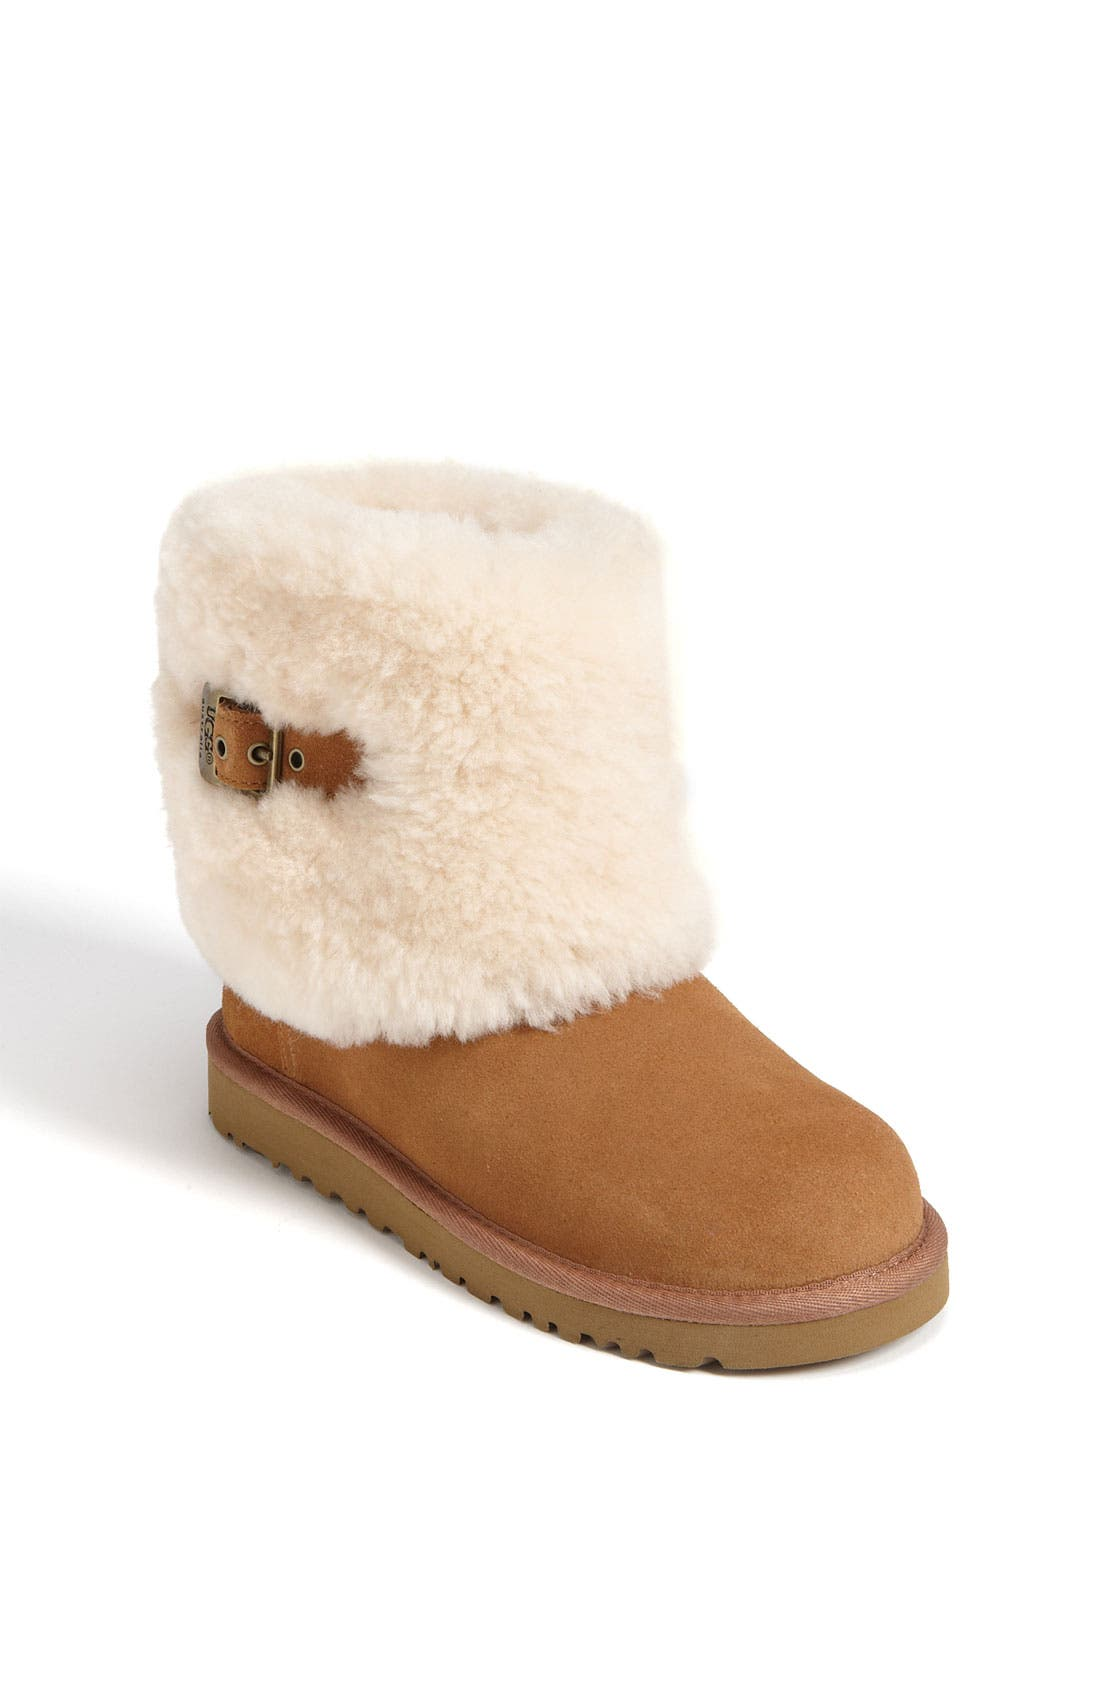 Main Image - UGG® 'Ellee' Boot (Toddler, Little Kid & Big Kid)